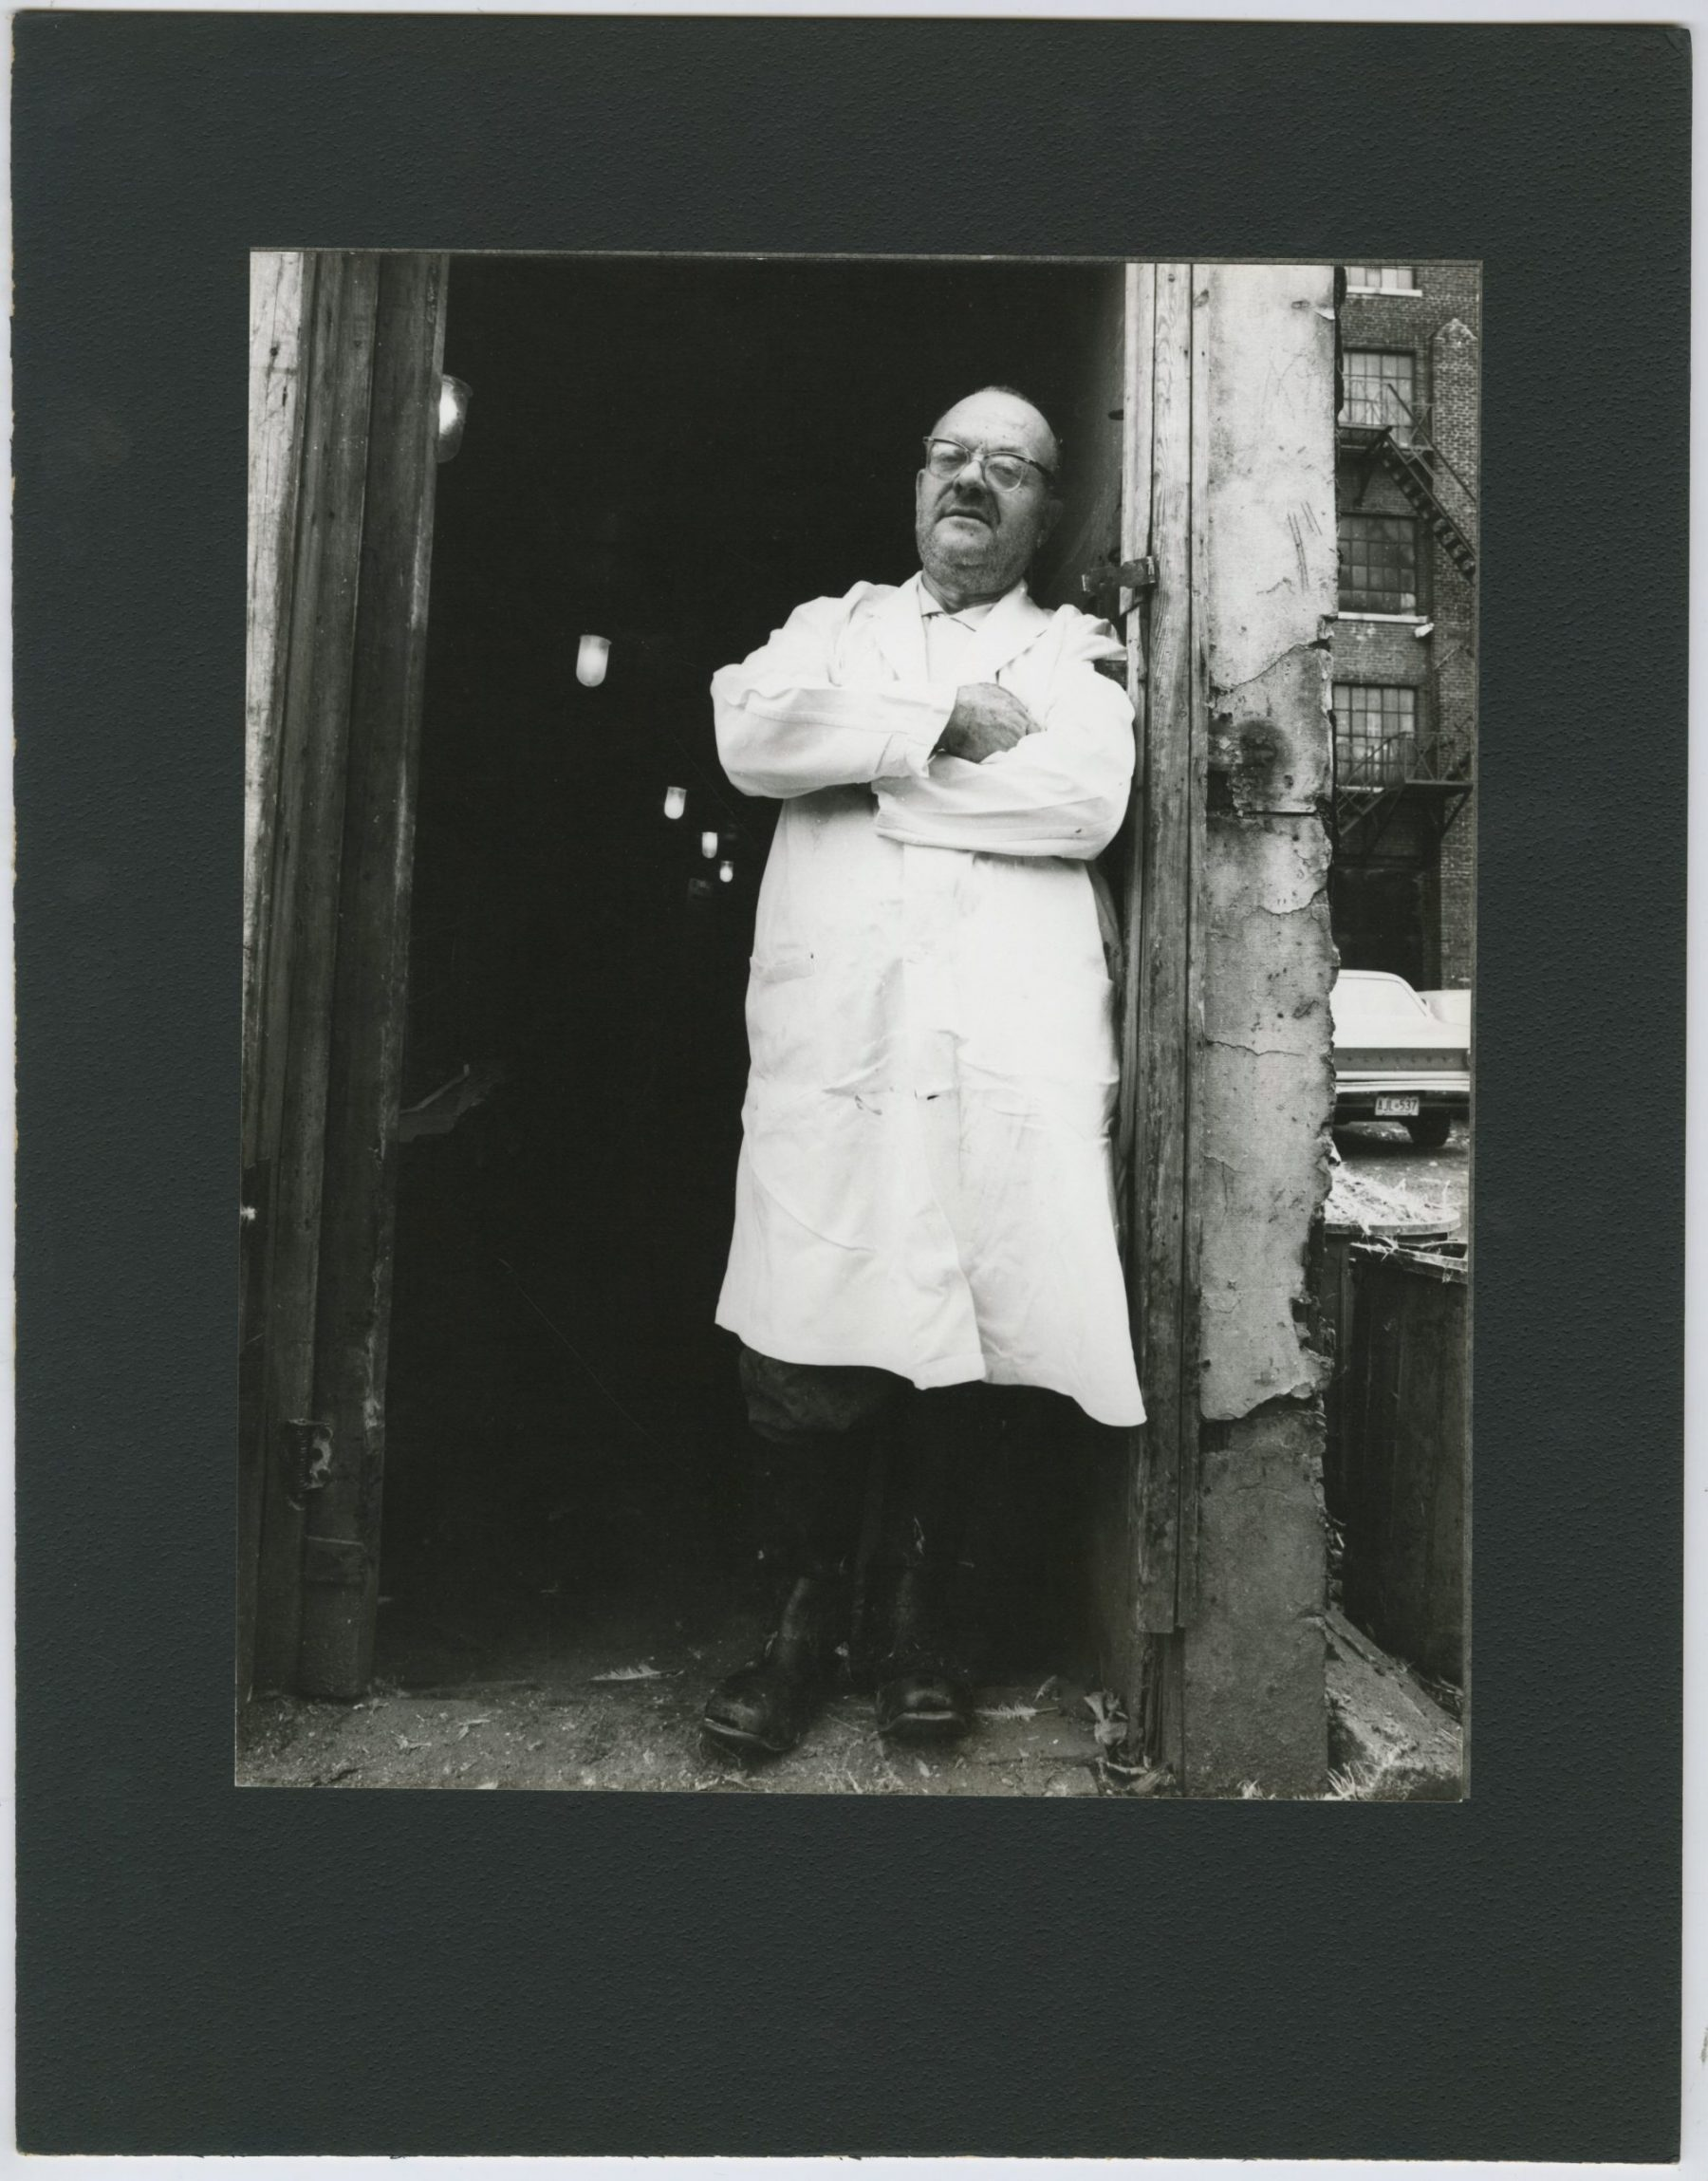 Chaim Light, a shochet, outside of a slaughterhouse behind the east side of Kensington Avenue and south of St. Andrews Street in the Summer of 1968. A shochet is a butcher certified to slaughter cattle and poultry in the manner prescribed by Jewish law.    OJA, item 4169.